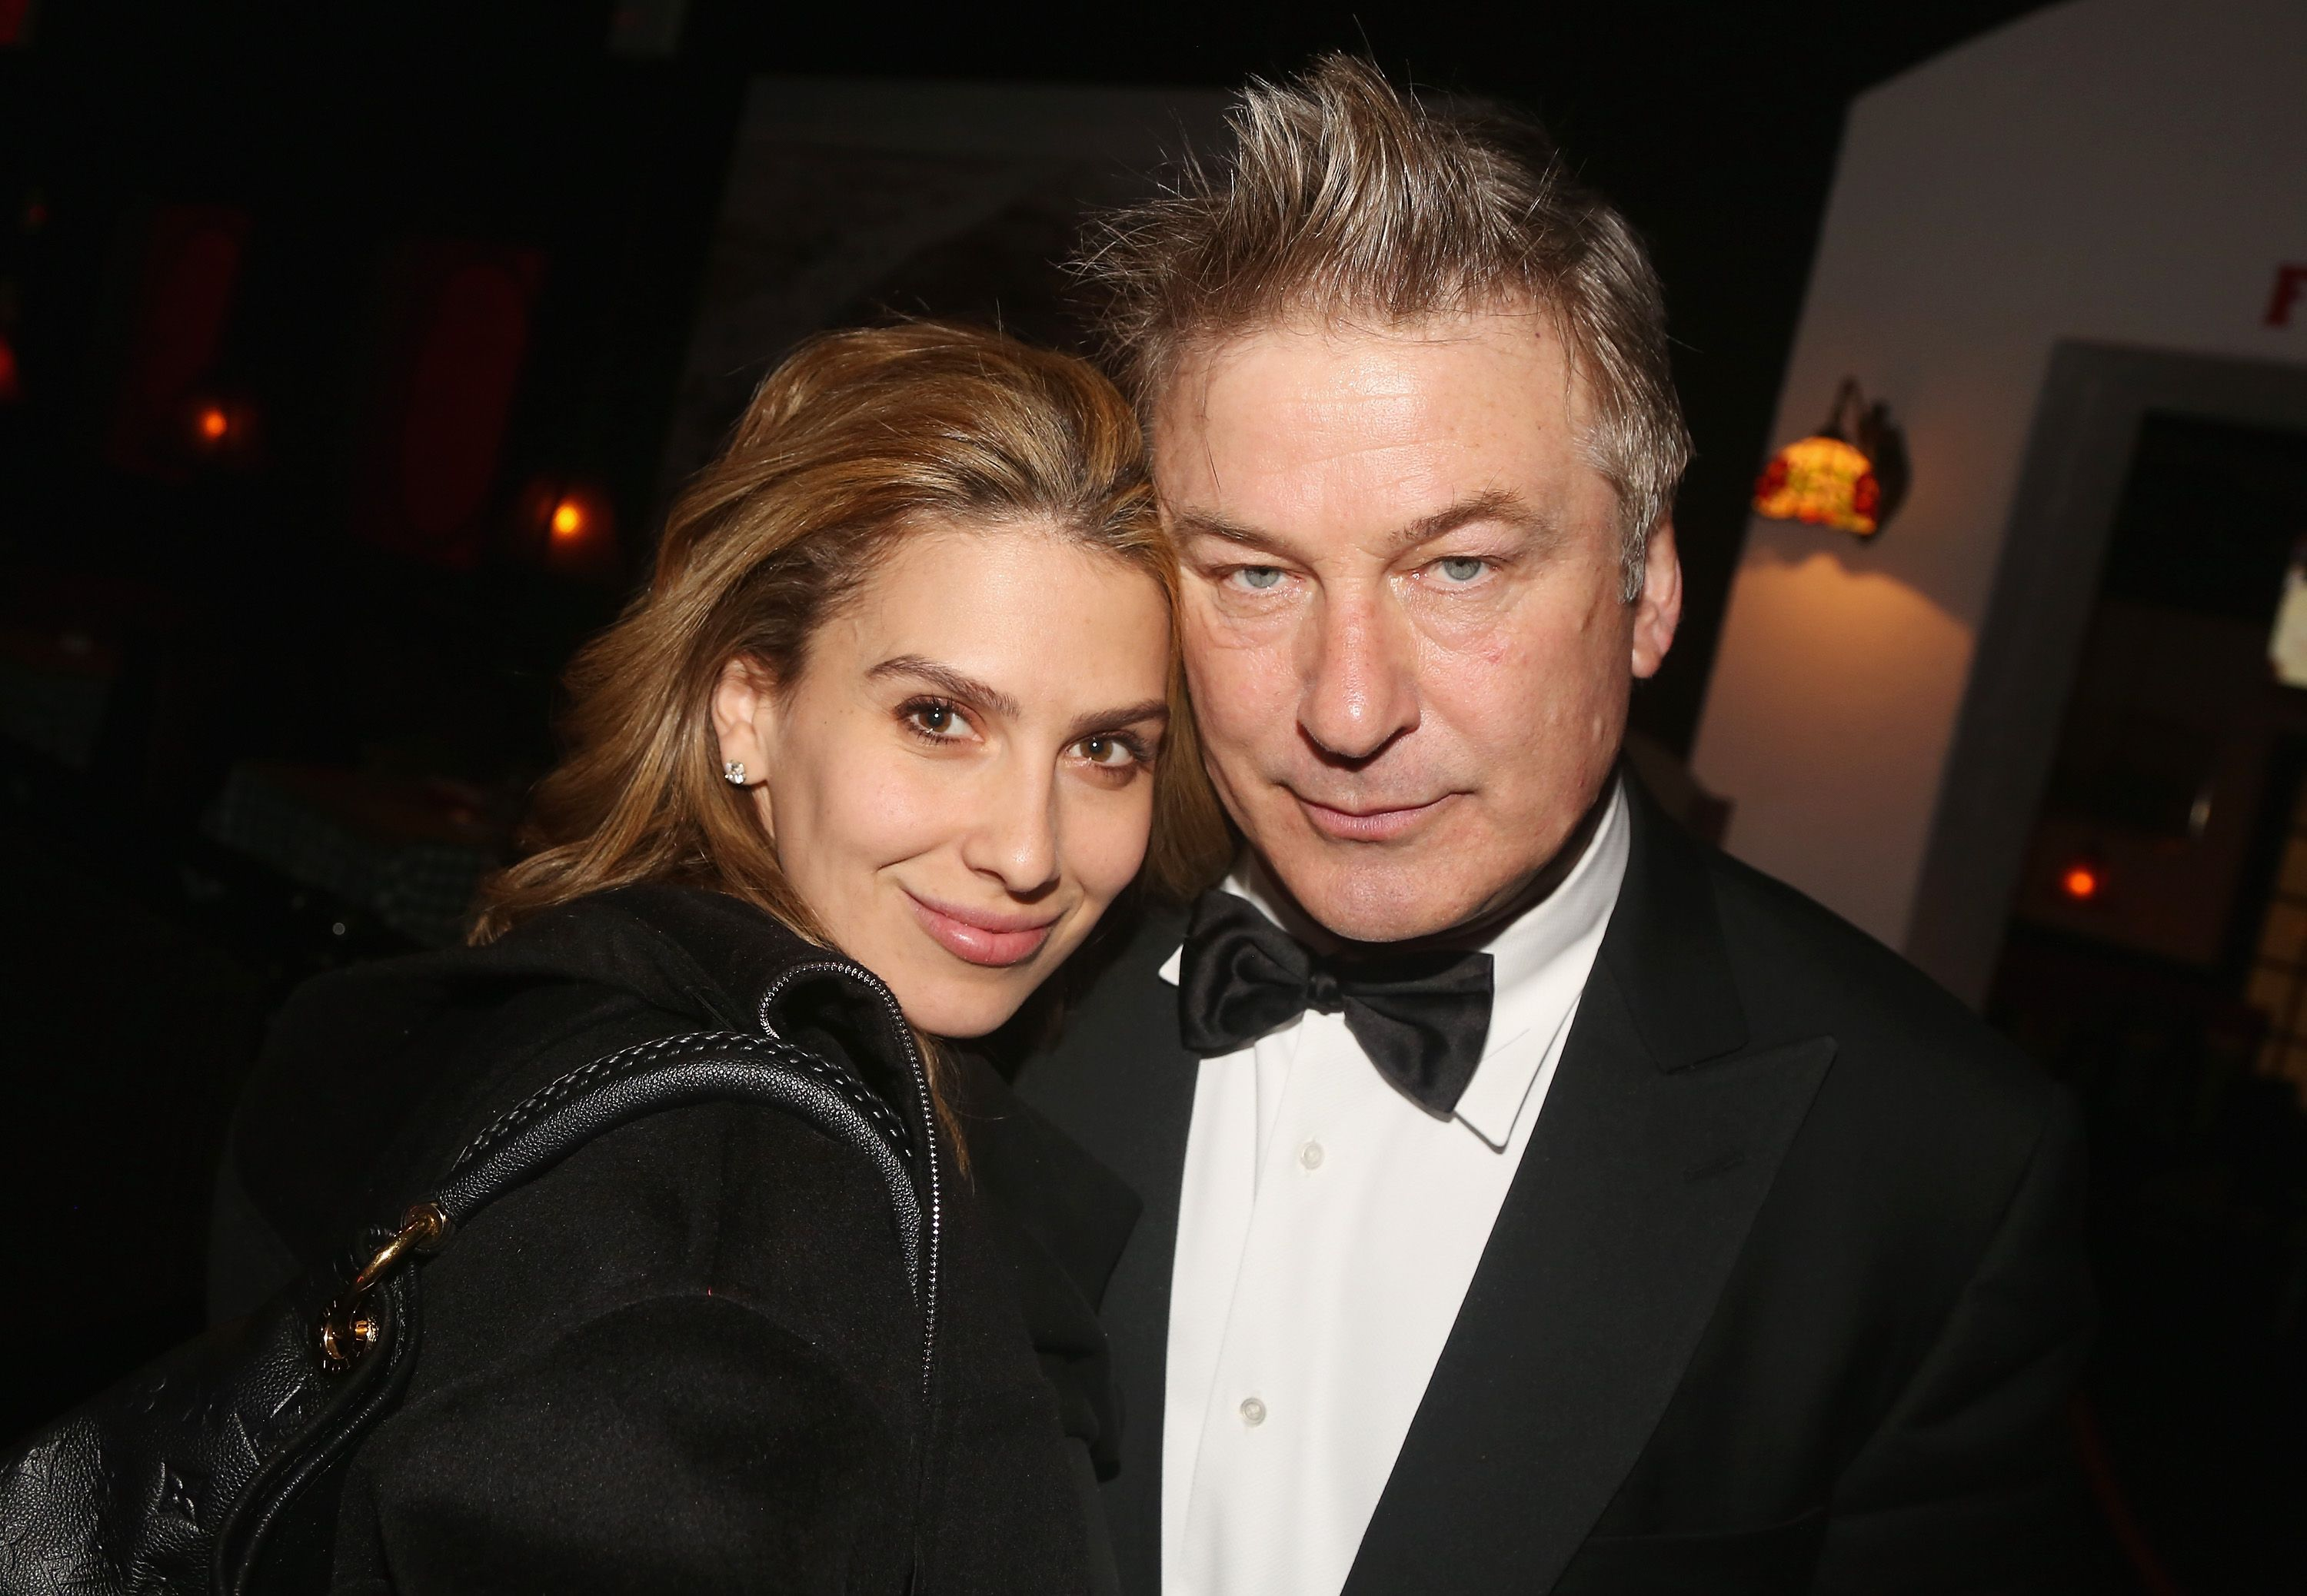 Hilaria Baldwin and Alec Baldwin at the after-party for The Roundabout Theatre Company in April 2019. | Photo: Getty Images